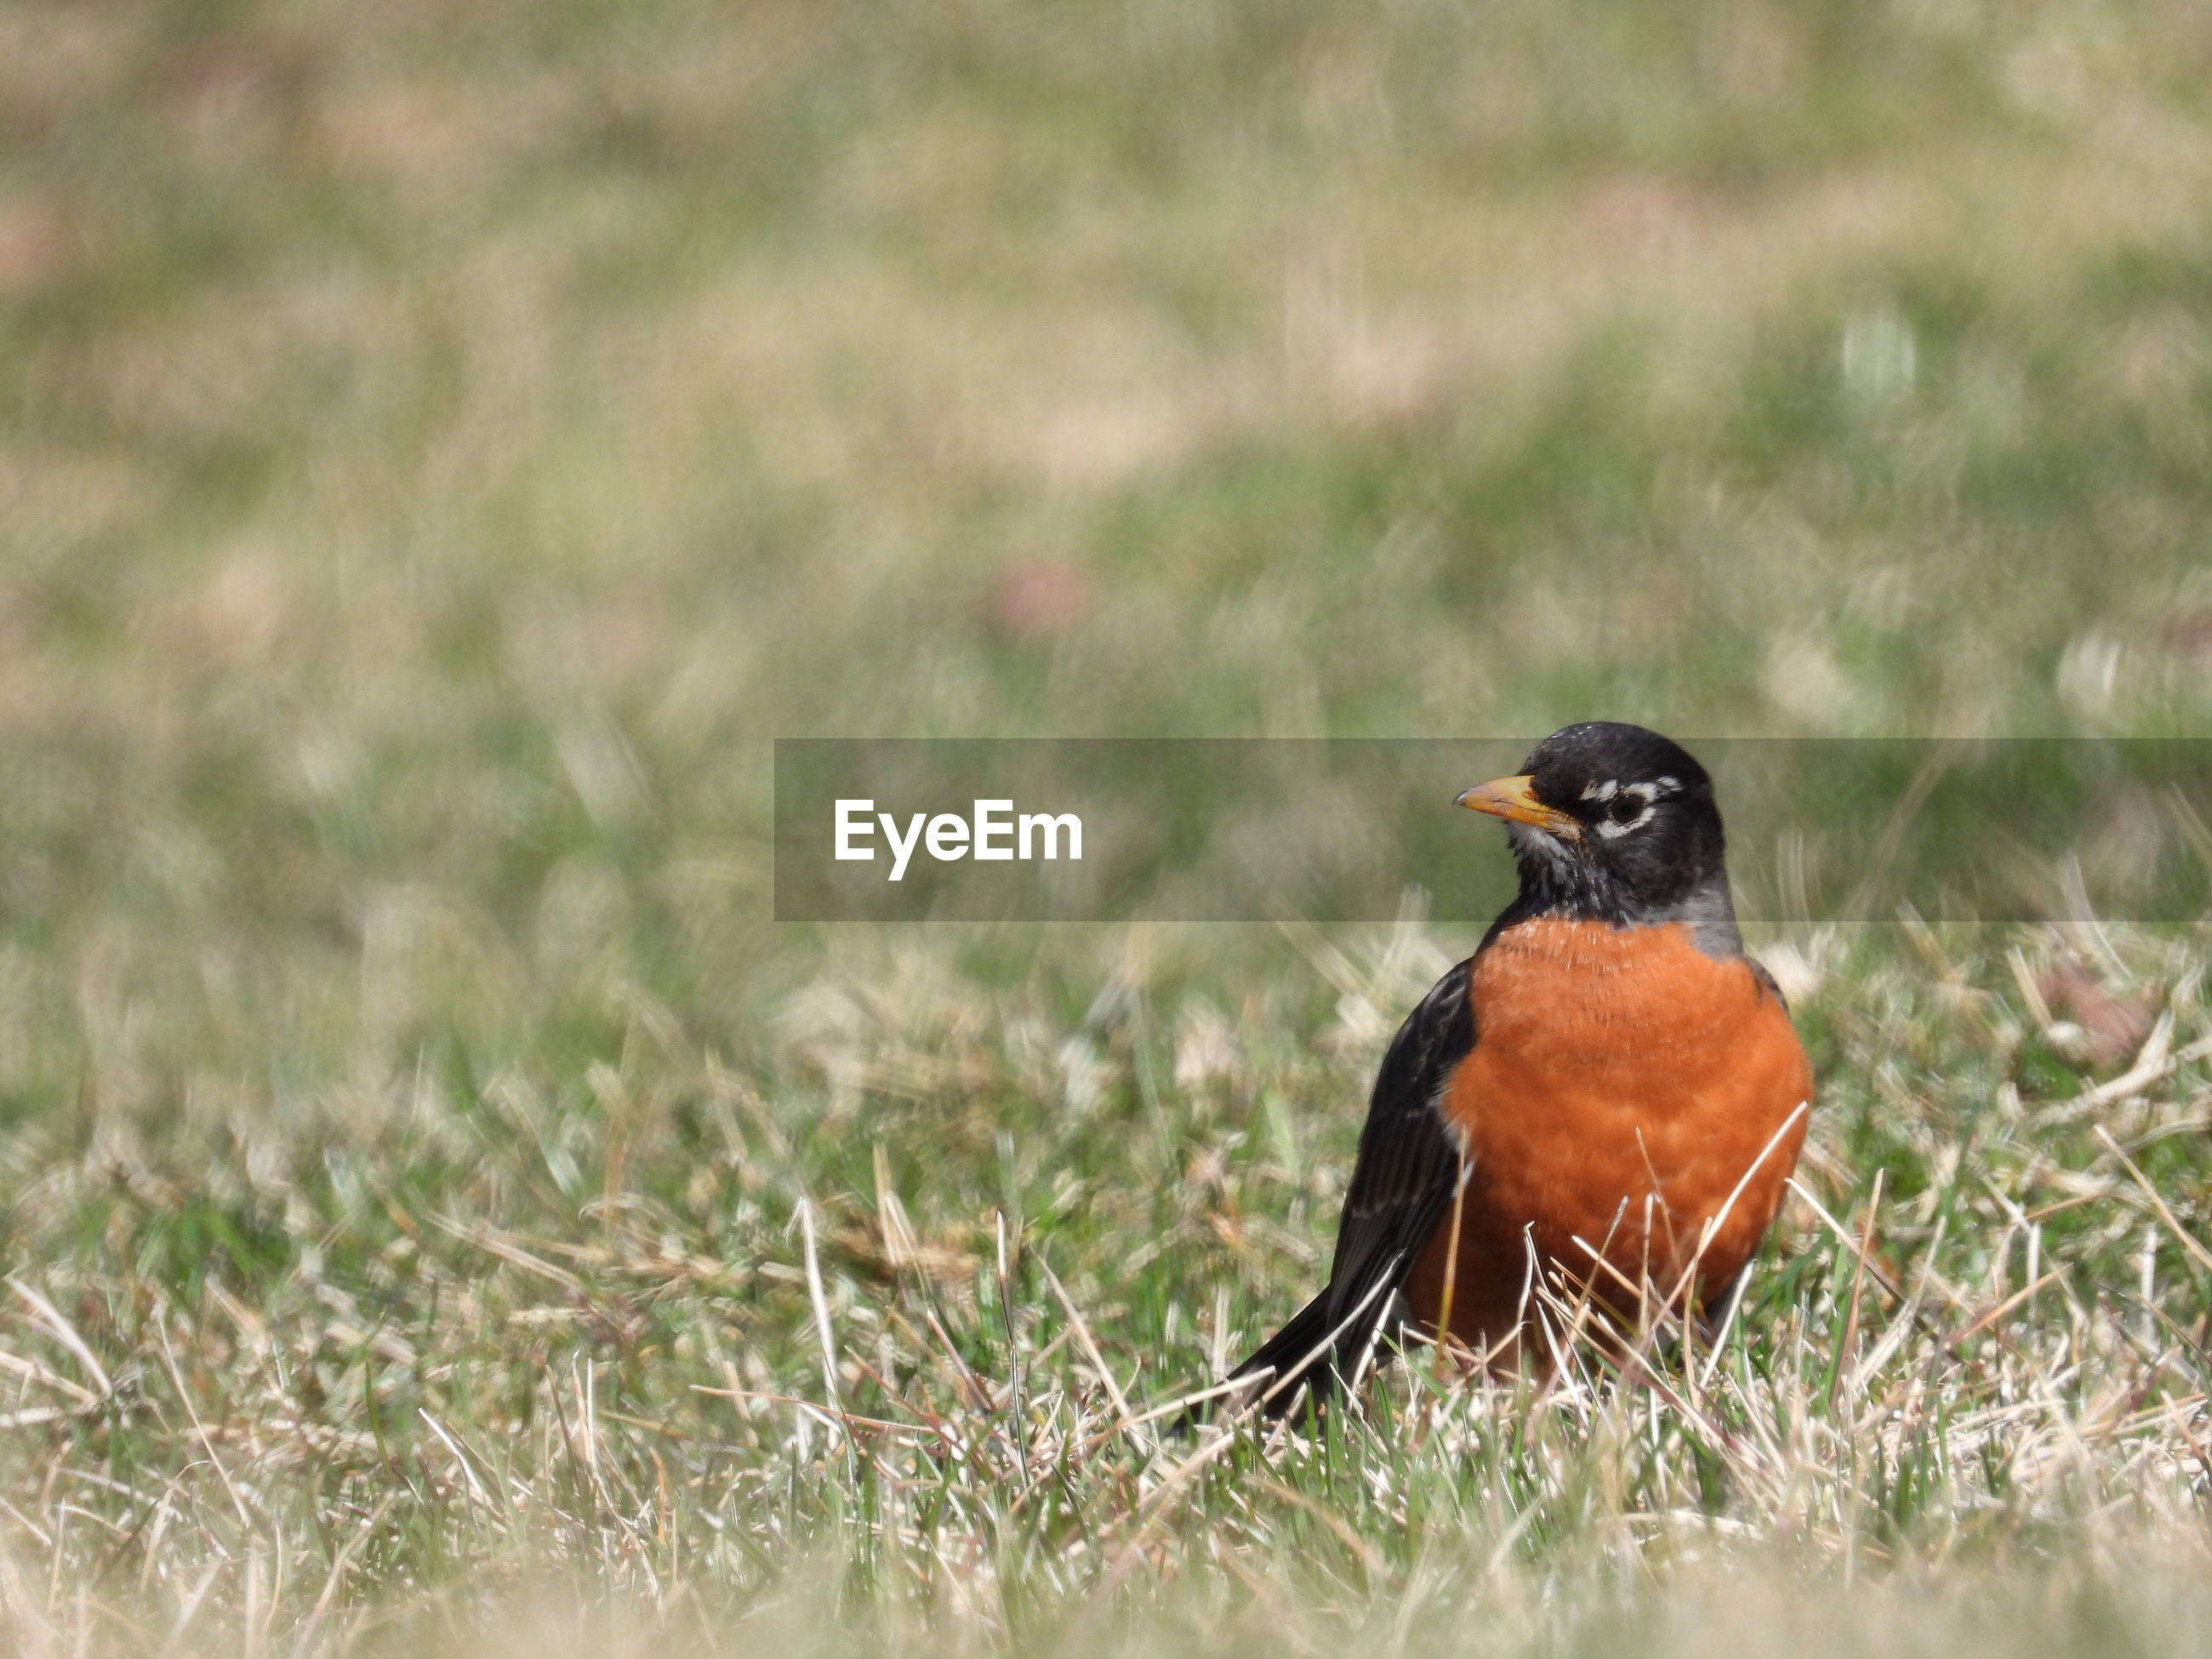 American robin sitting in the grass listening for worms.